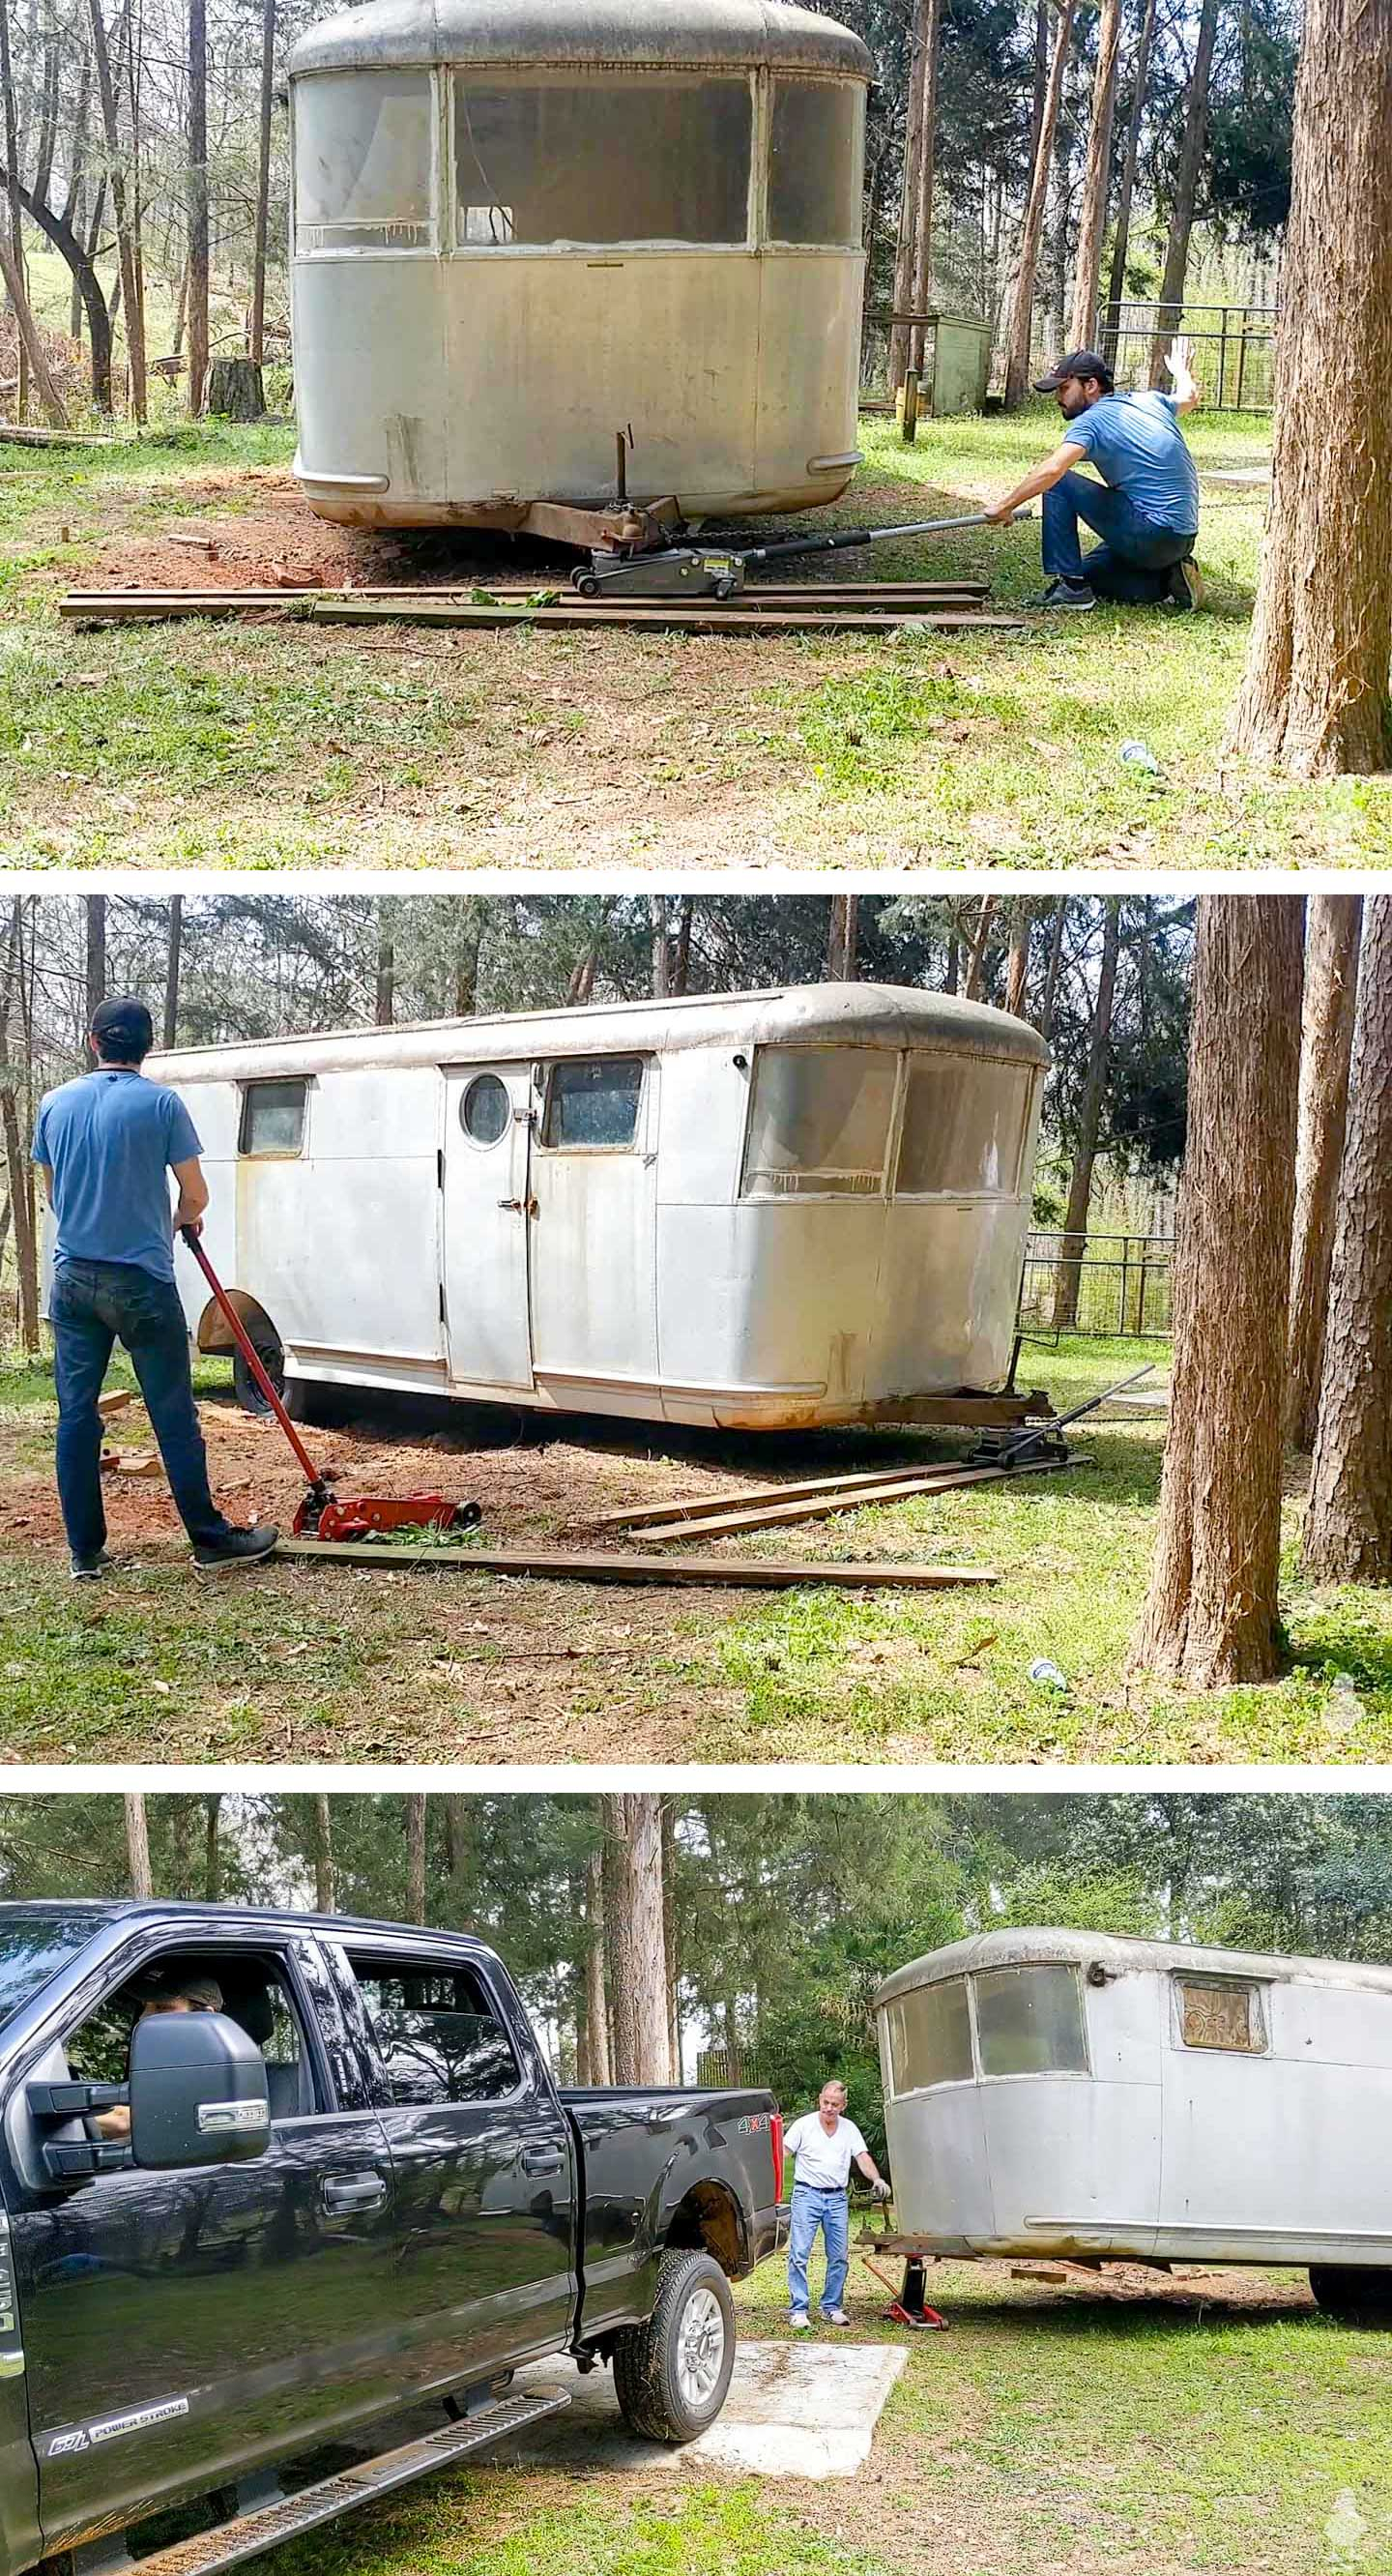 Rubys-Revival-turning-the-camper-around-and-hooking-it-up-to-the-truck how to move an airstream